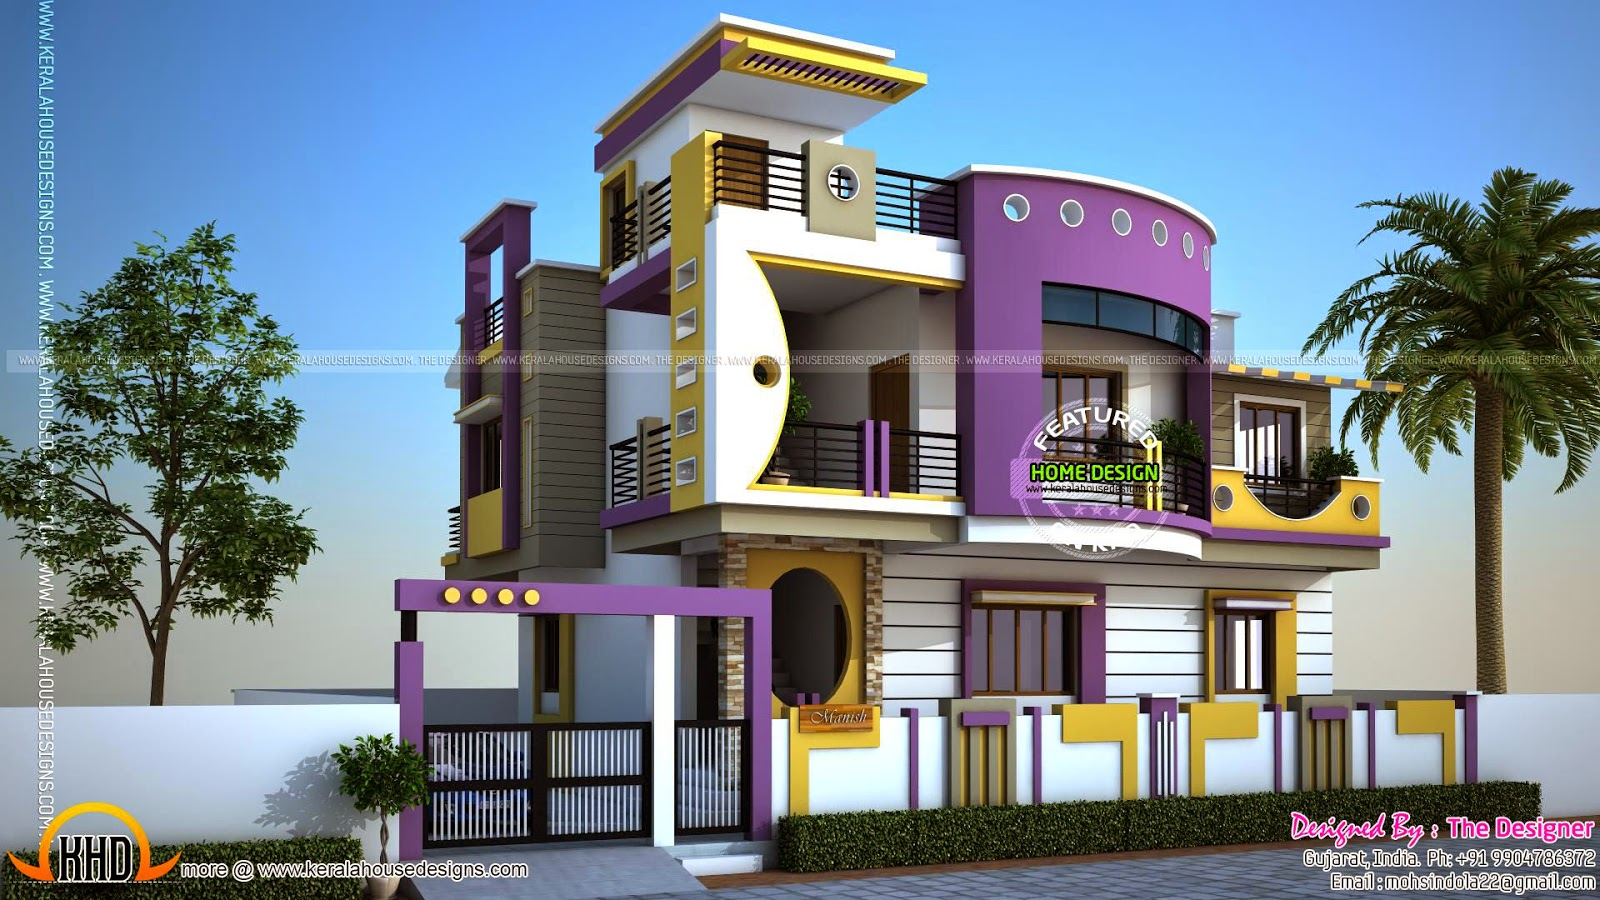 House exterior designs in contemporary style kerala home for House outside color design